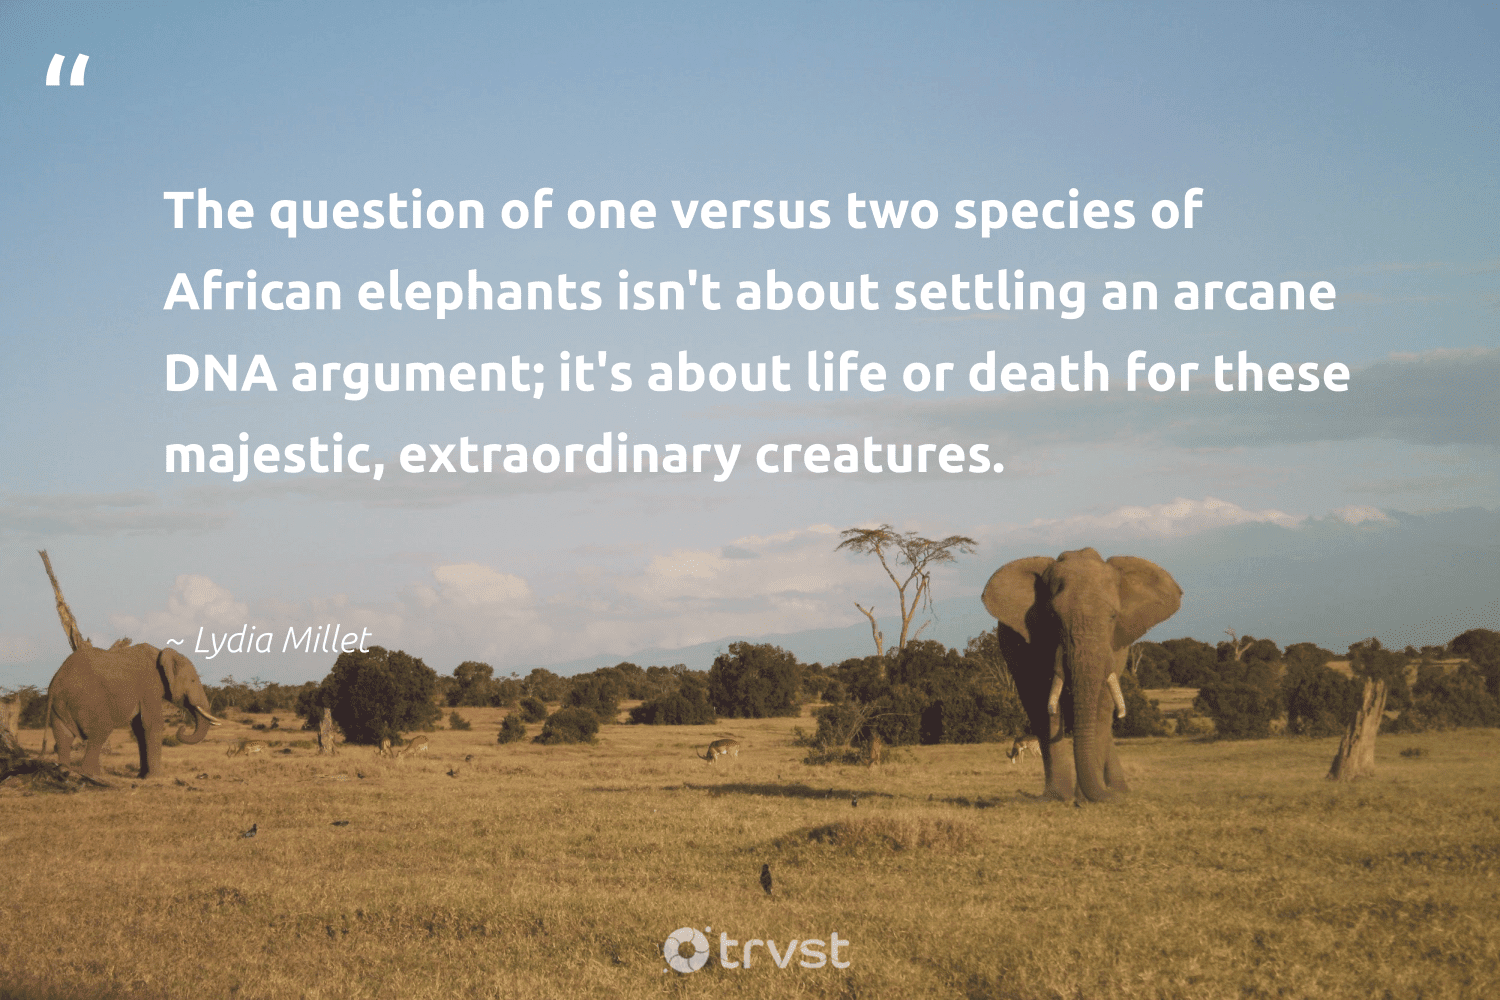 """""""The question of one versus two species of African elephants isn't about settling an arcane DNA argument; it's about life or death for these majestic, extraordinary creatures.""""  - Lydia Millet #trvst #quotes #elephants #naturelovers #dogood #wildlife #socialchange #elephant #beinspired #mammals #bethechange #wildgeography"""